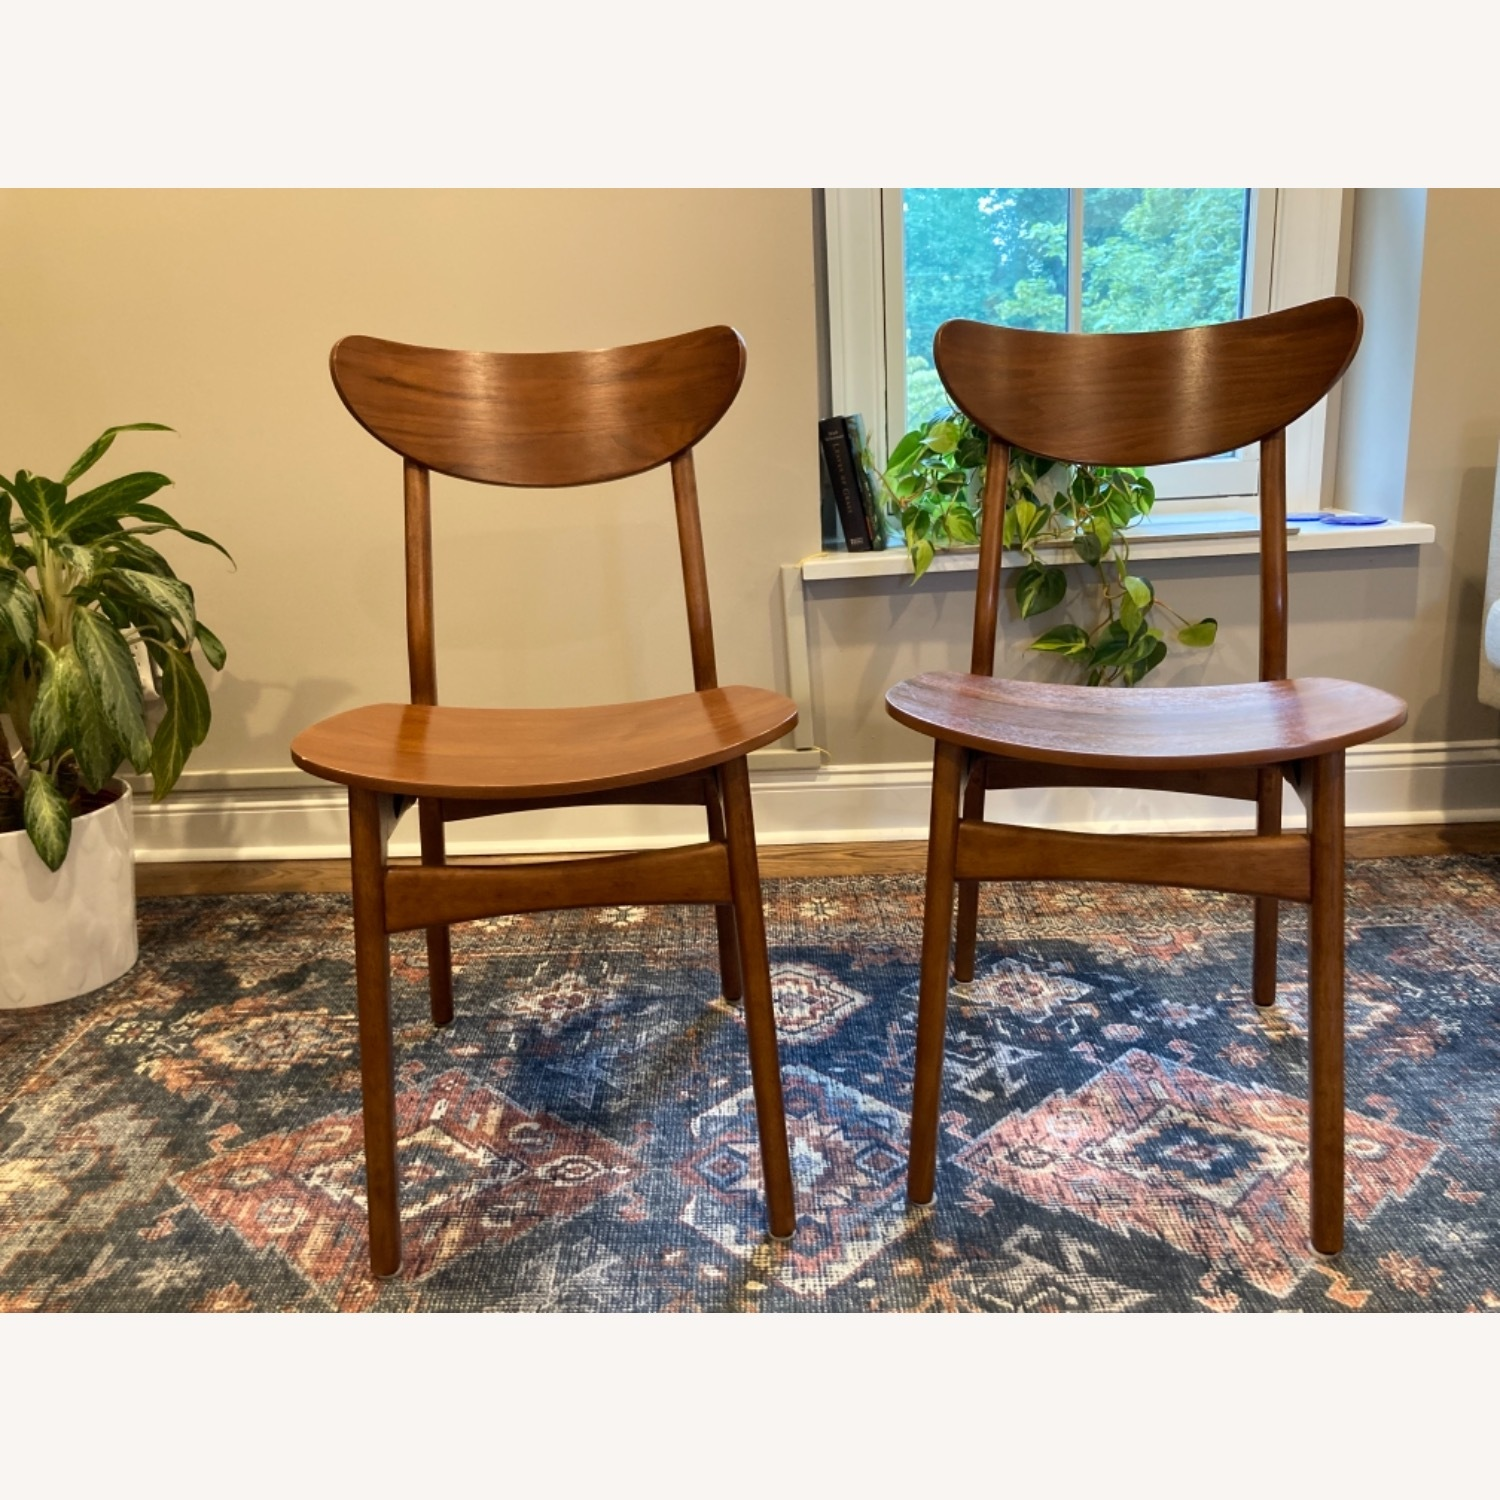 West Elm Walnut Dining Chairs - image-1